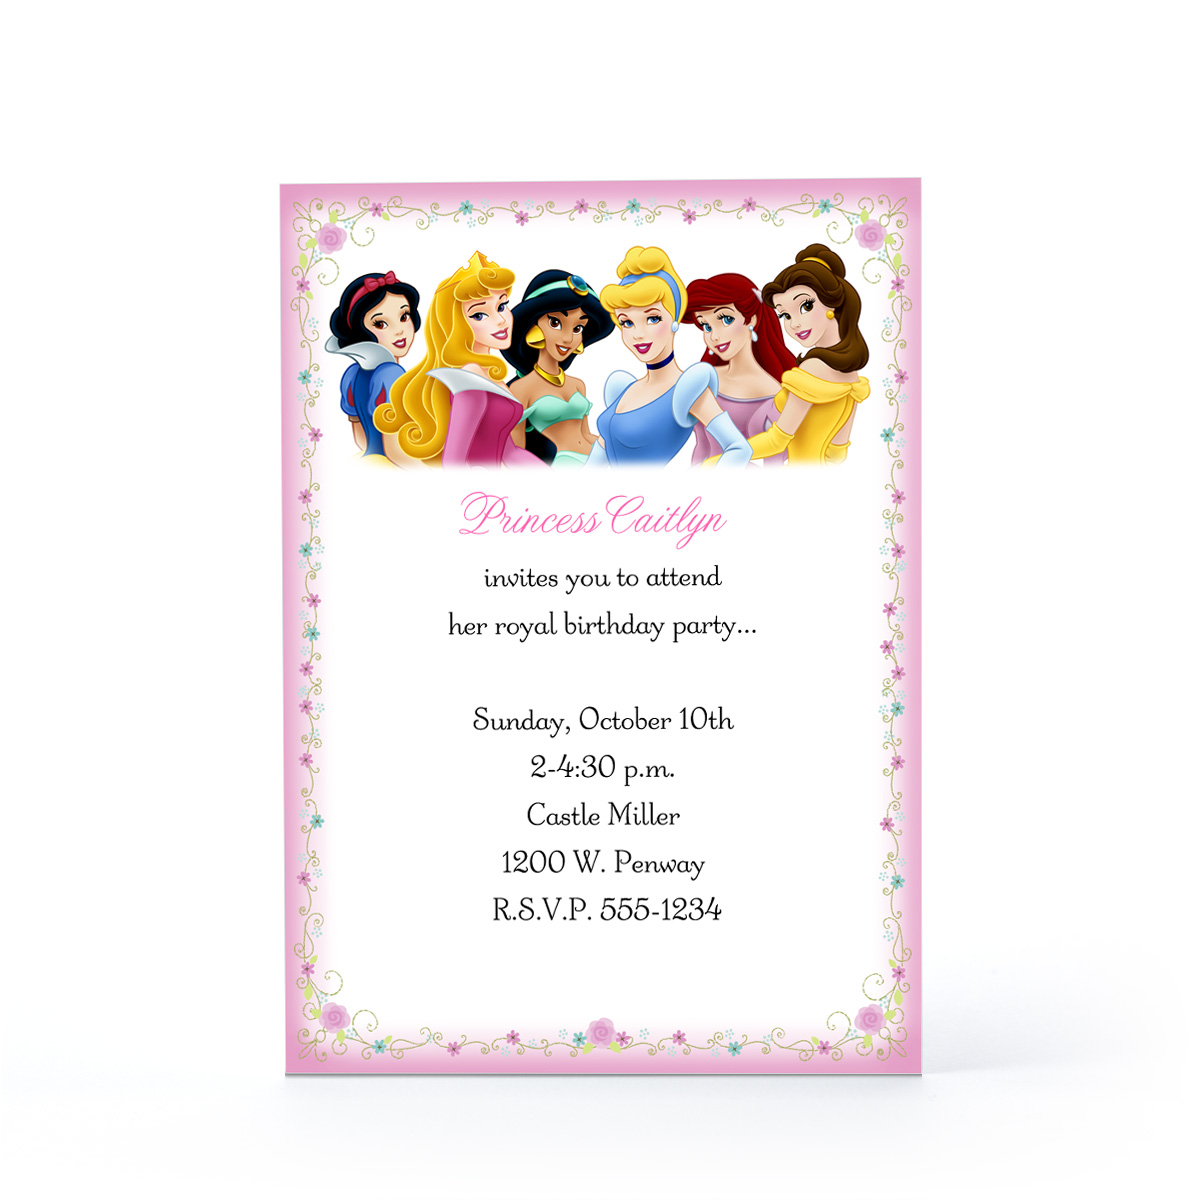 Princess Party Invitation Template Mickey Mouse Invitations - Royal birthday invitation template